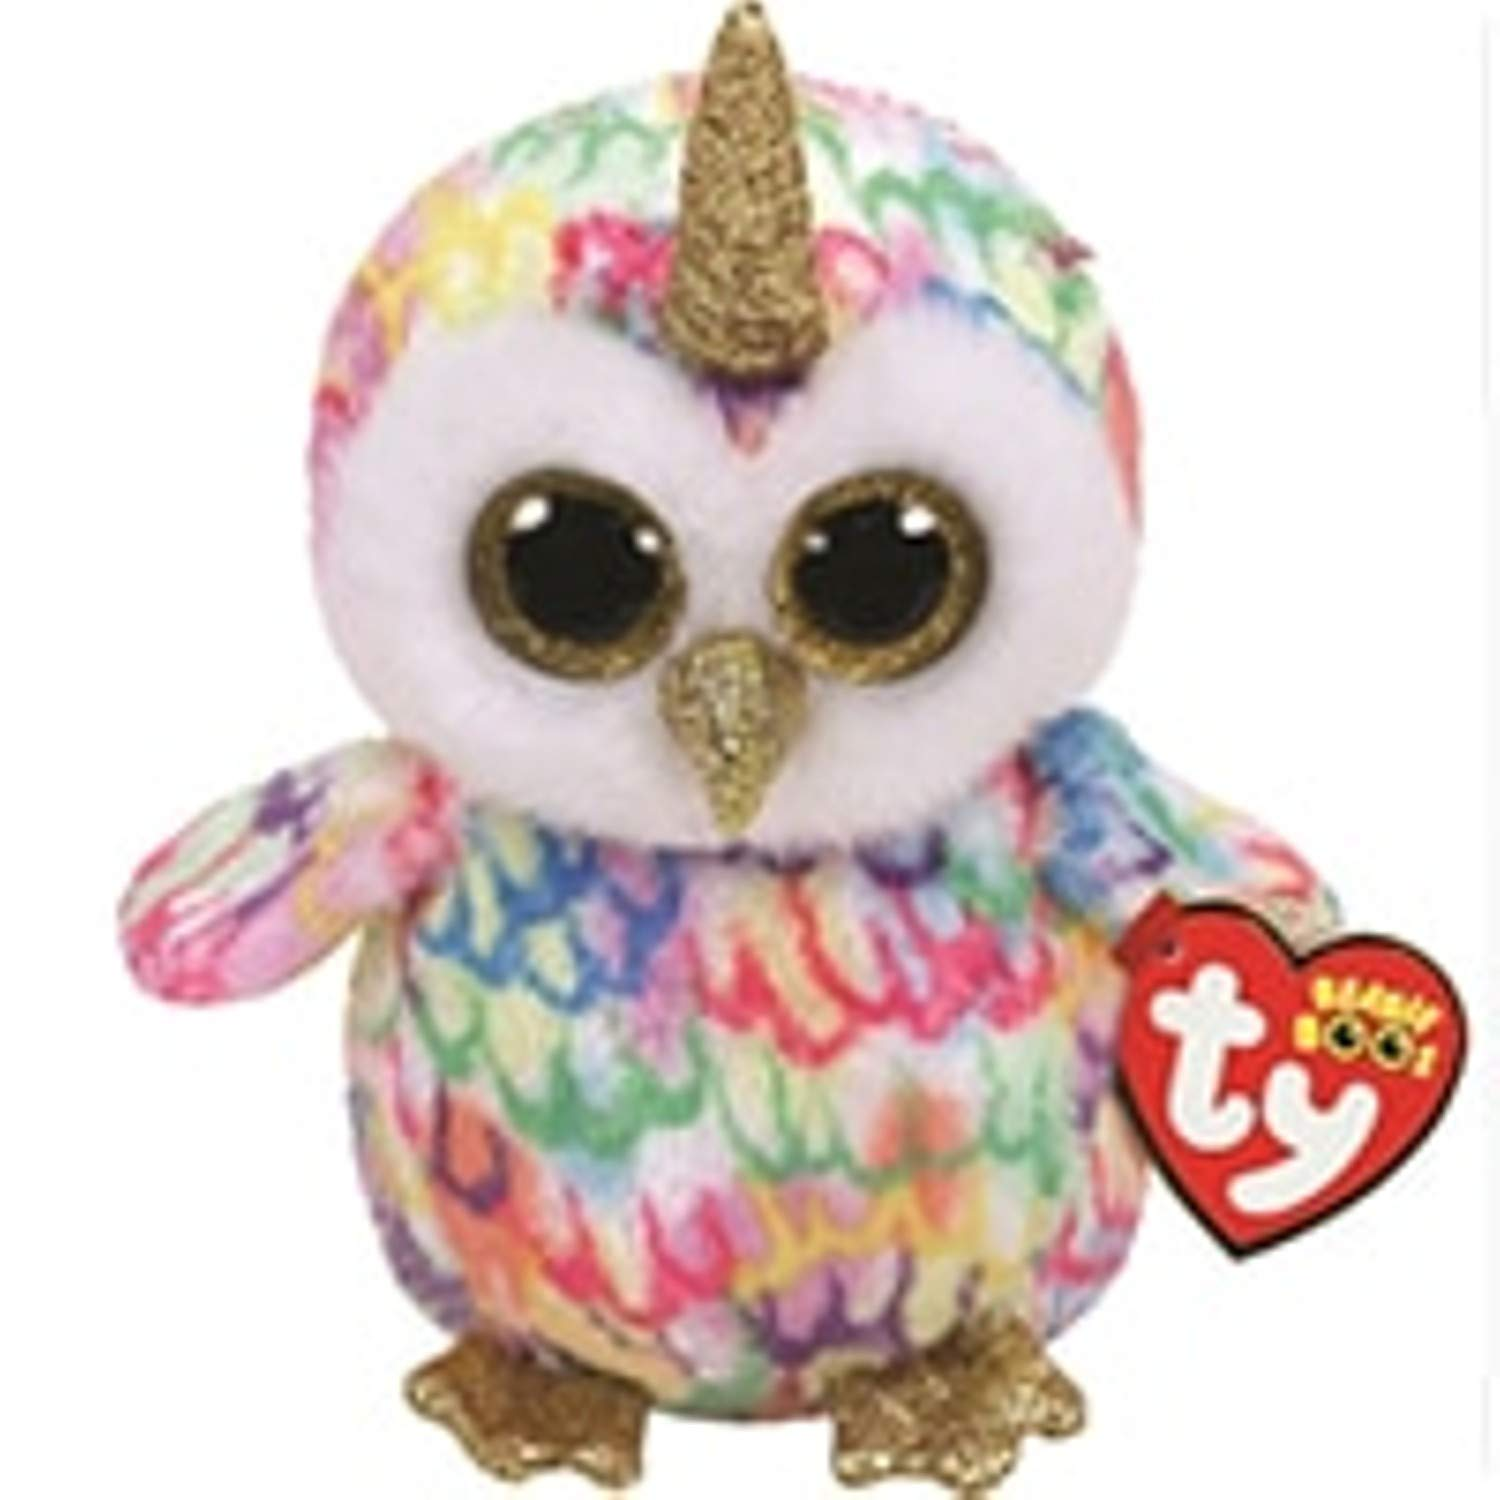 Amazon.com: JEWH Ty Beanie Boo Cinder, Saffire, Darla ,Dragon, Cat ,Blue Penguin, Owl, Pig, Unicorn, Spider, Wolf, Cat, Fox, Dog - Plush Toy Doll Stuffed ...